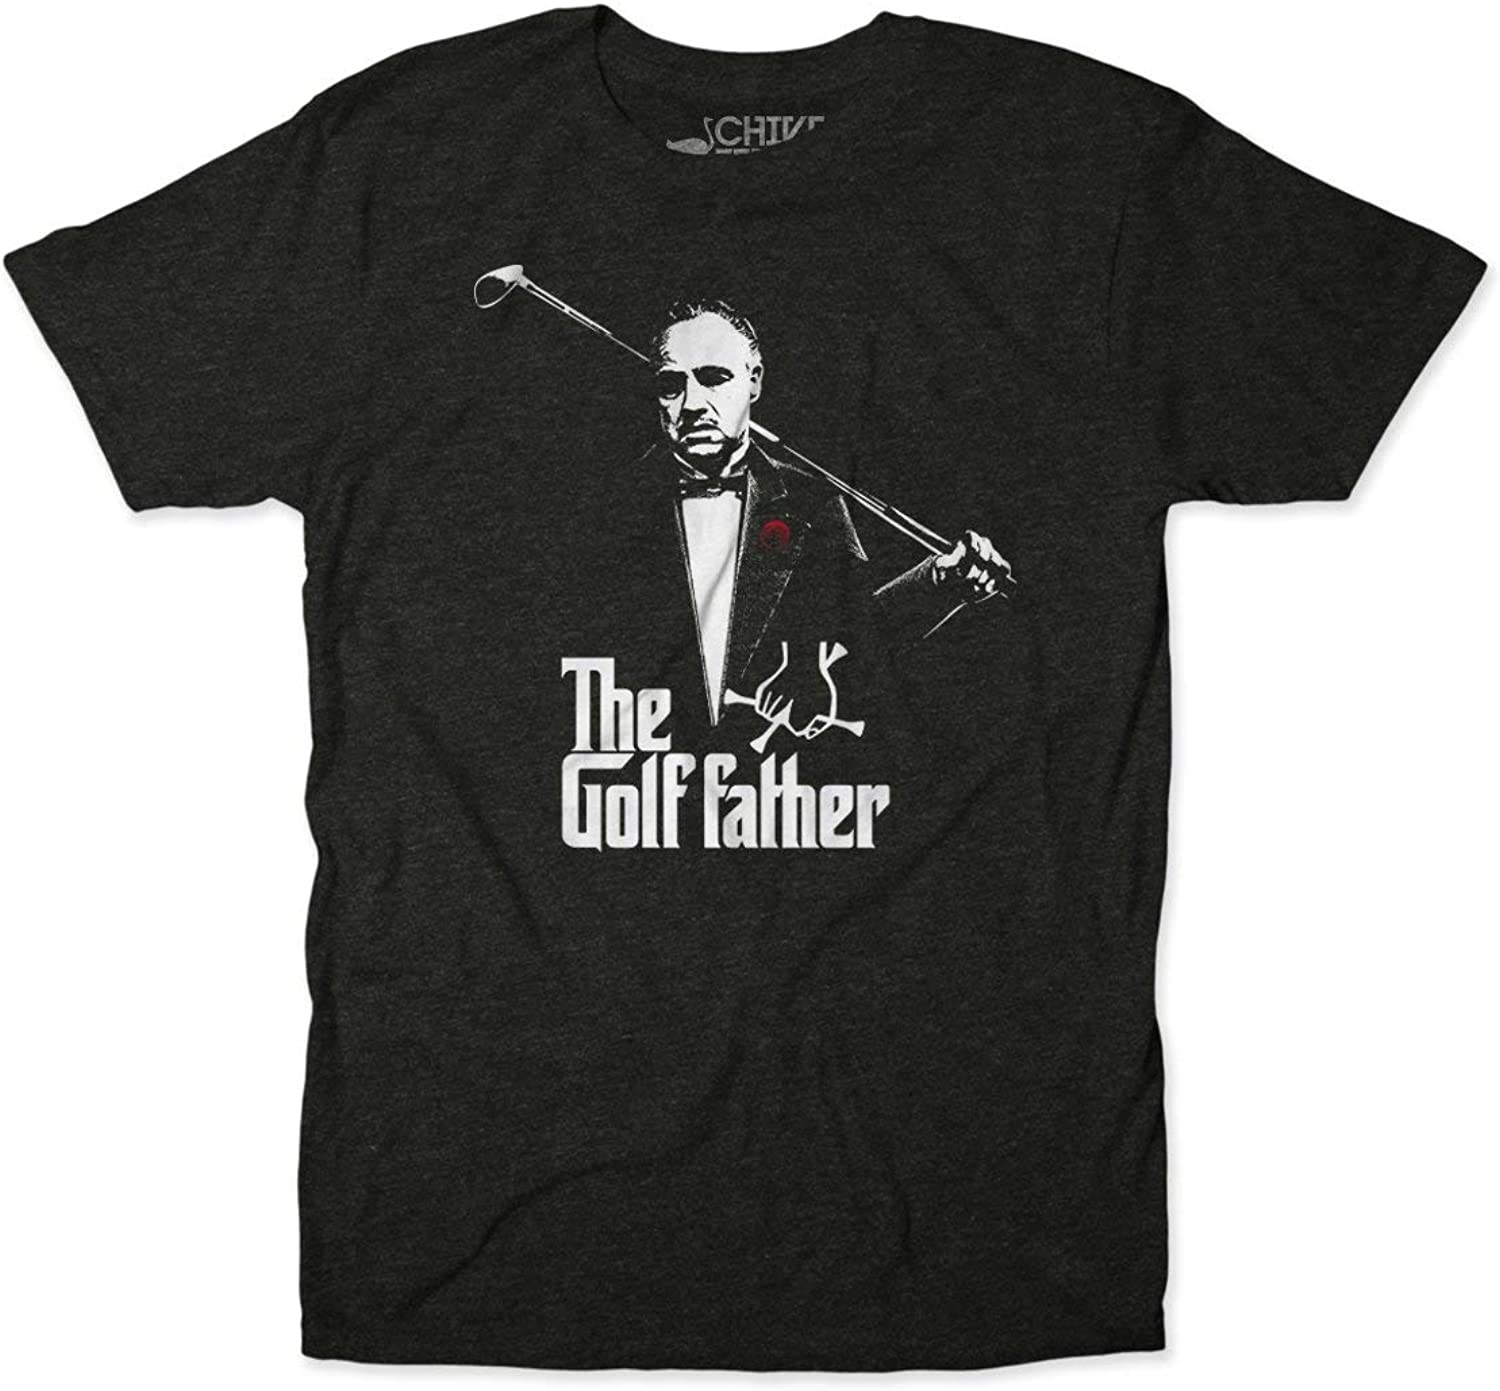 theCHIVE Mens' The Courier Cheap bargain shipping free Father Golf